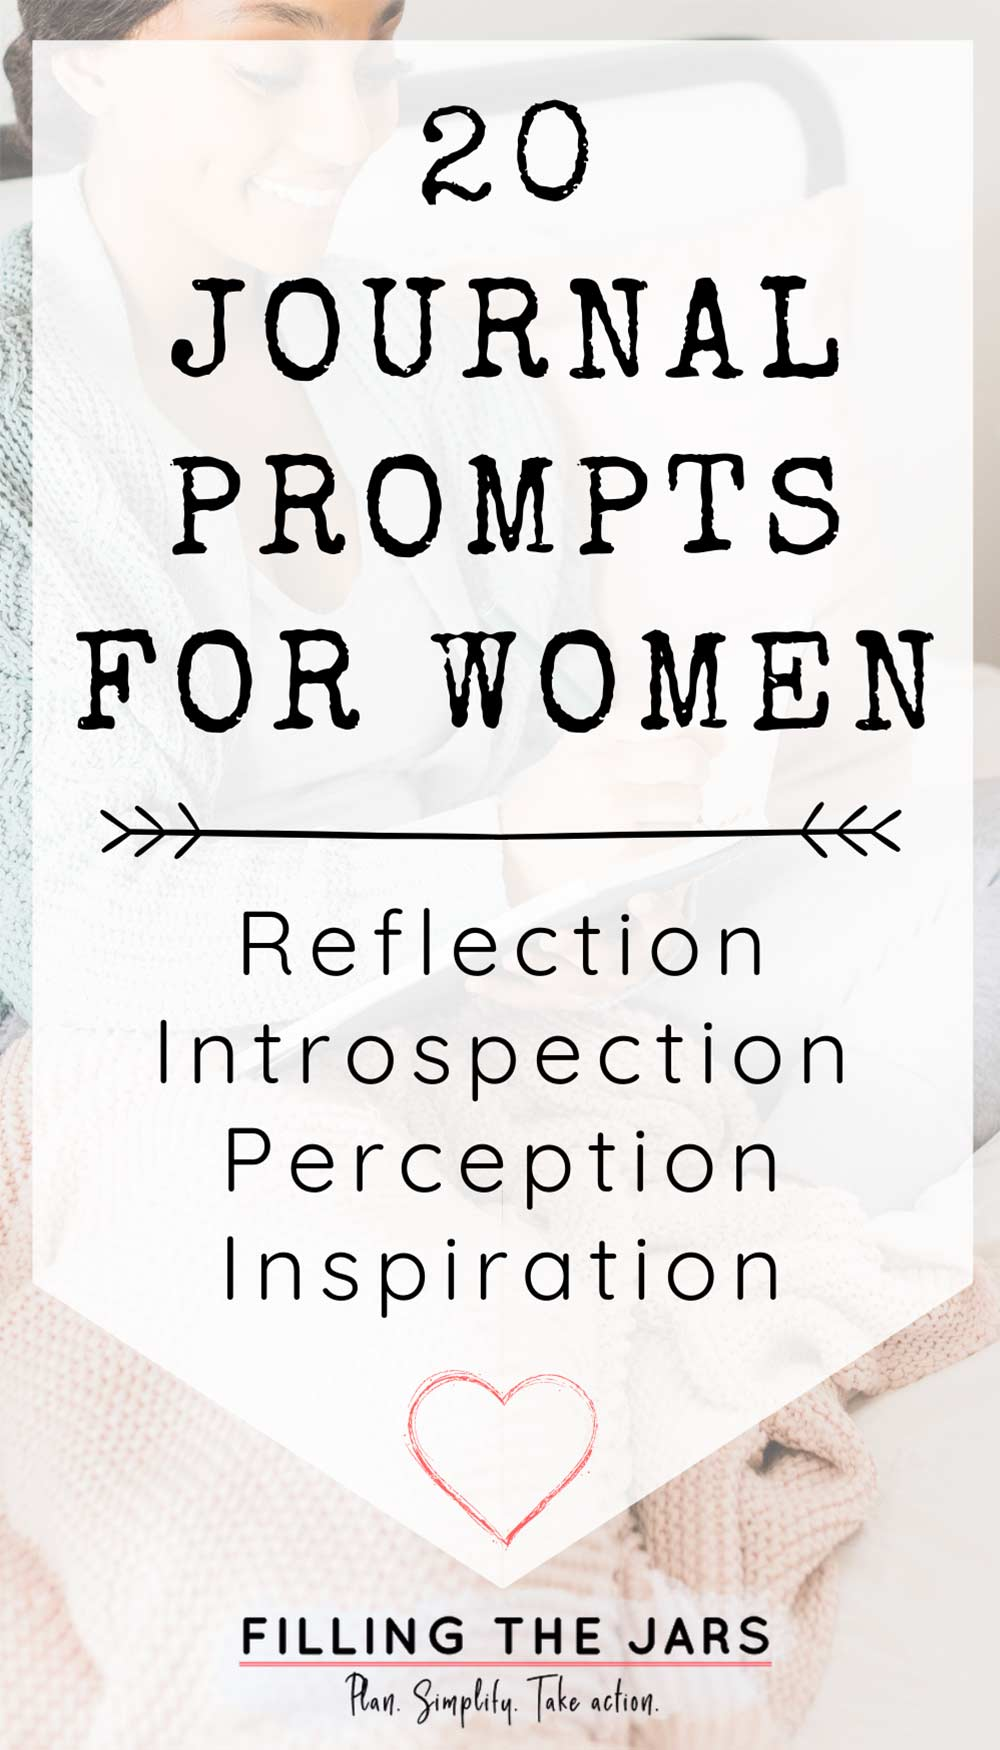 journal prompts for women text on white background over image of woman sitting on bed and writing in journal